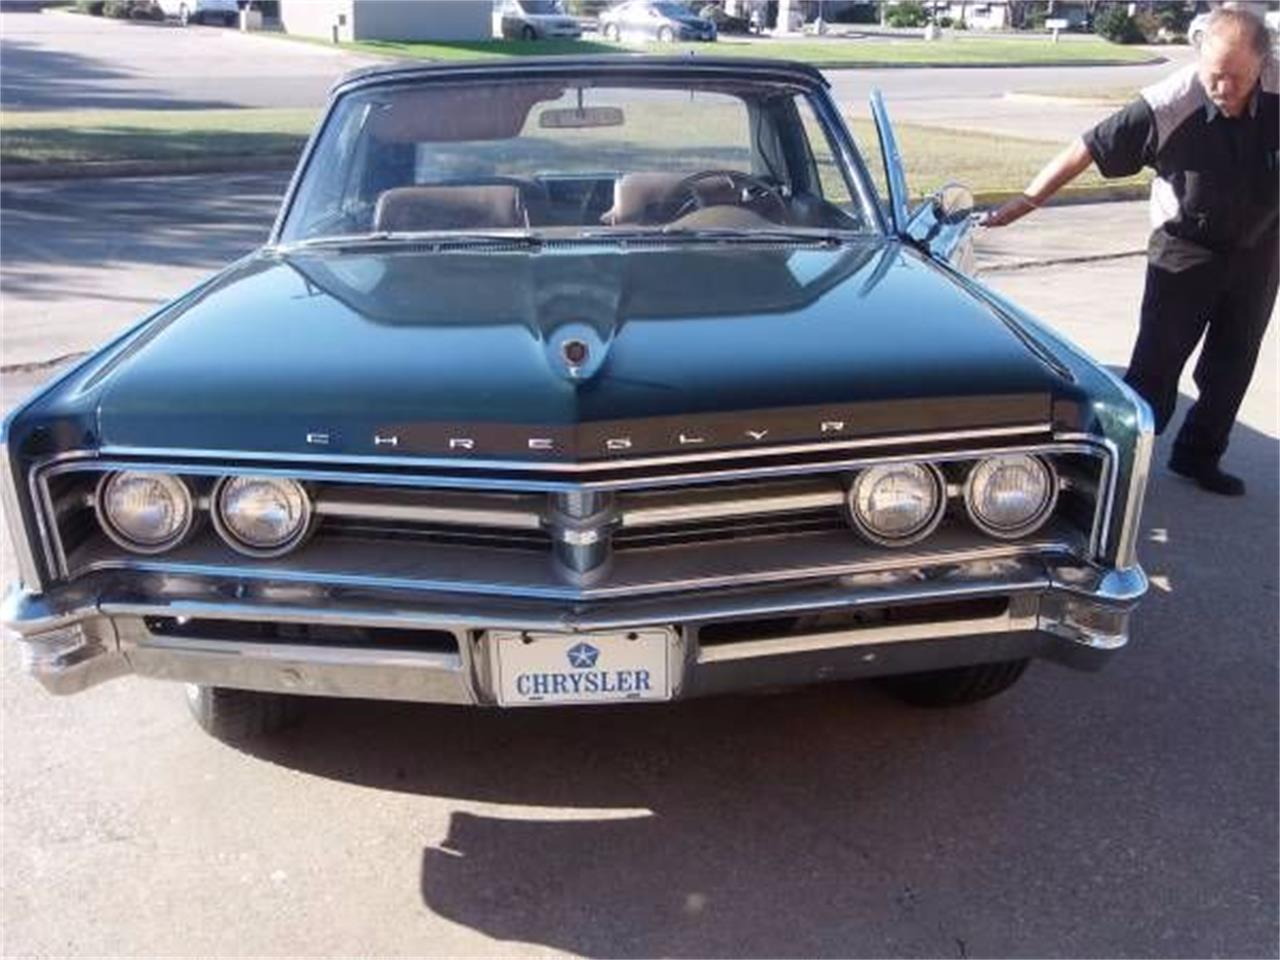 1966 Chrysler 300 for sale in Cadillac, MI – photo 2